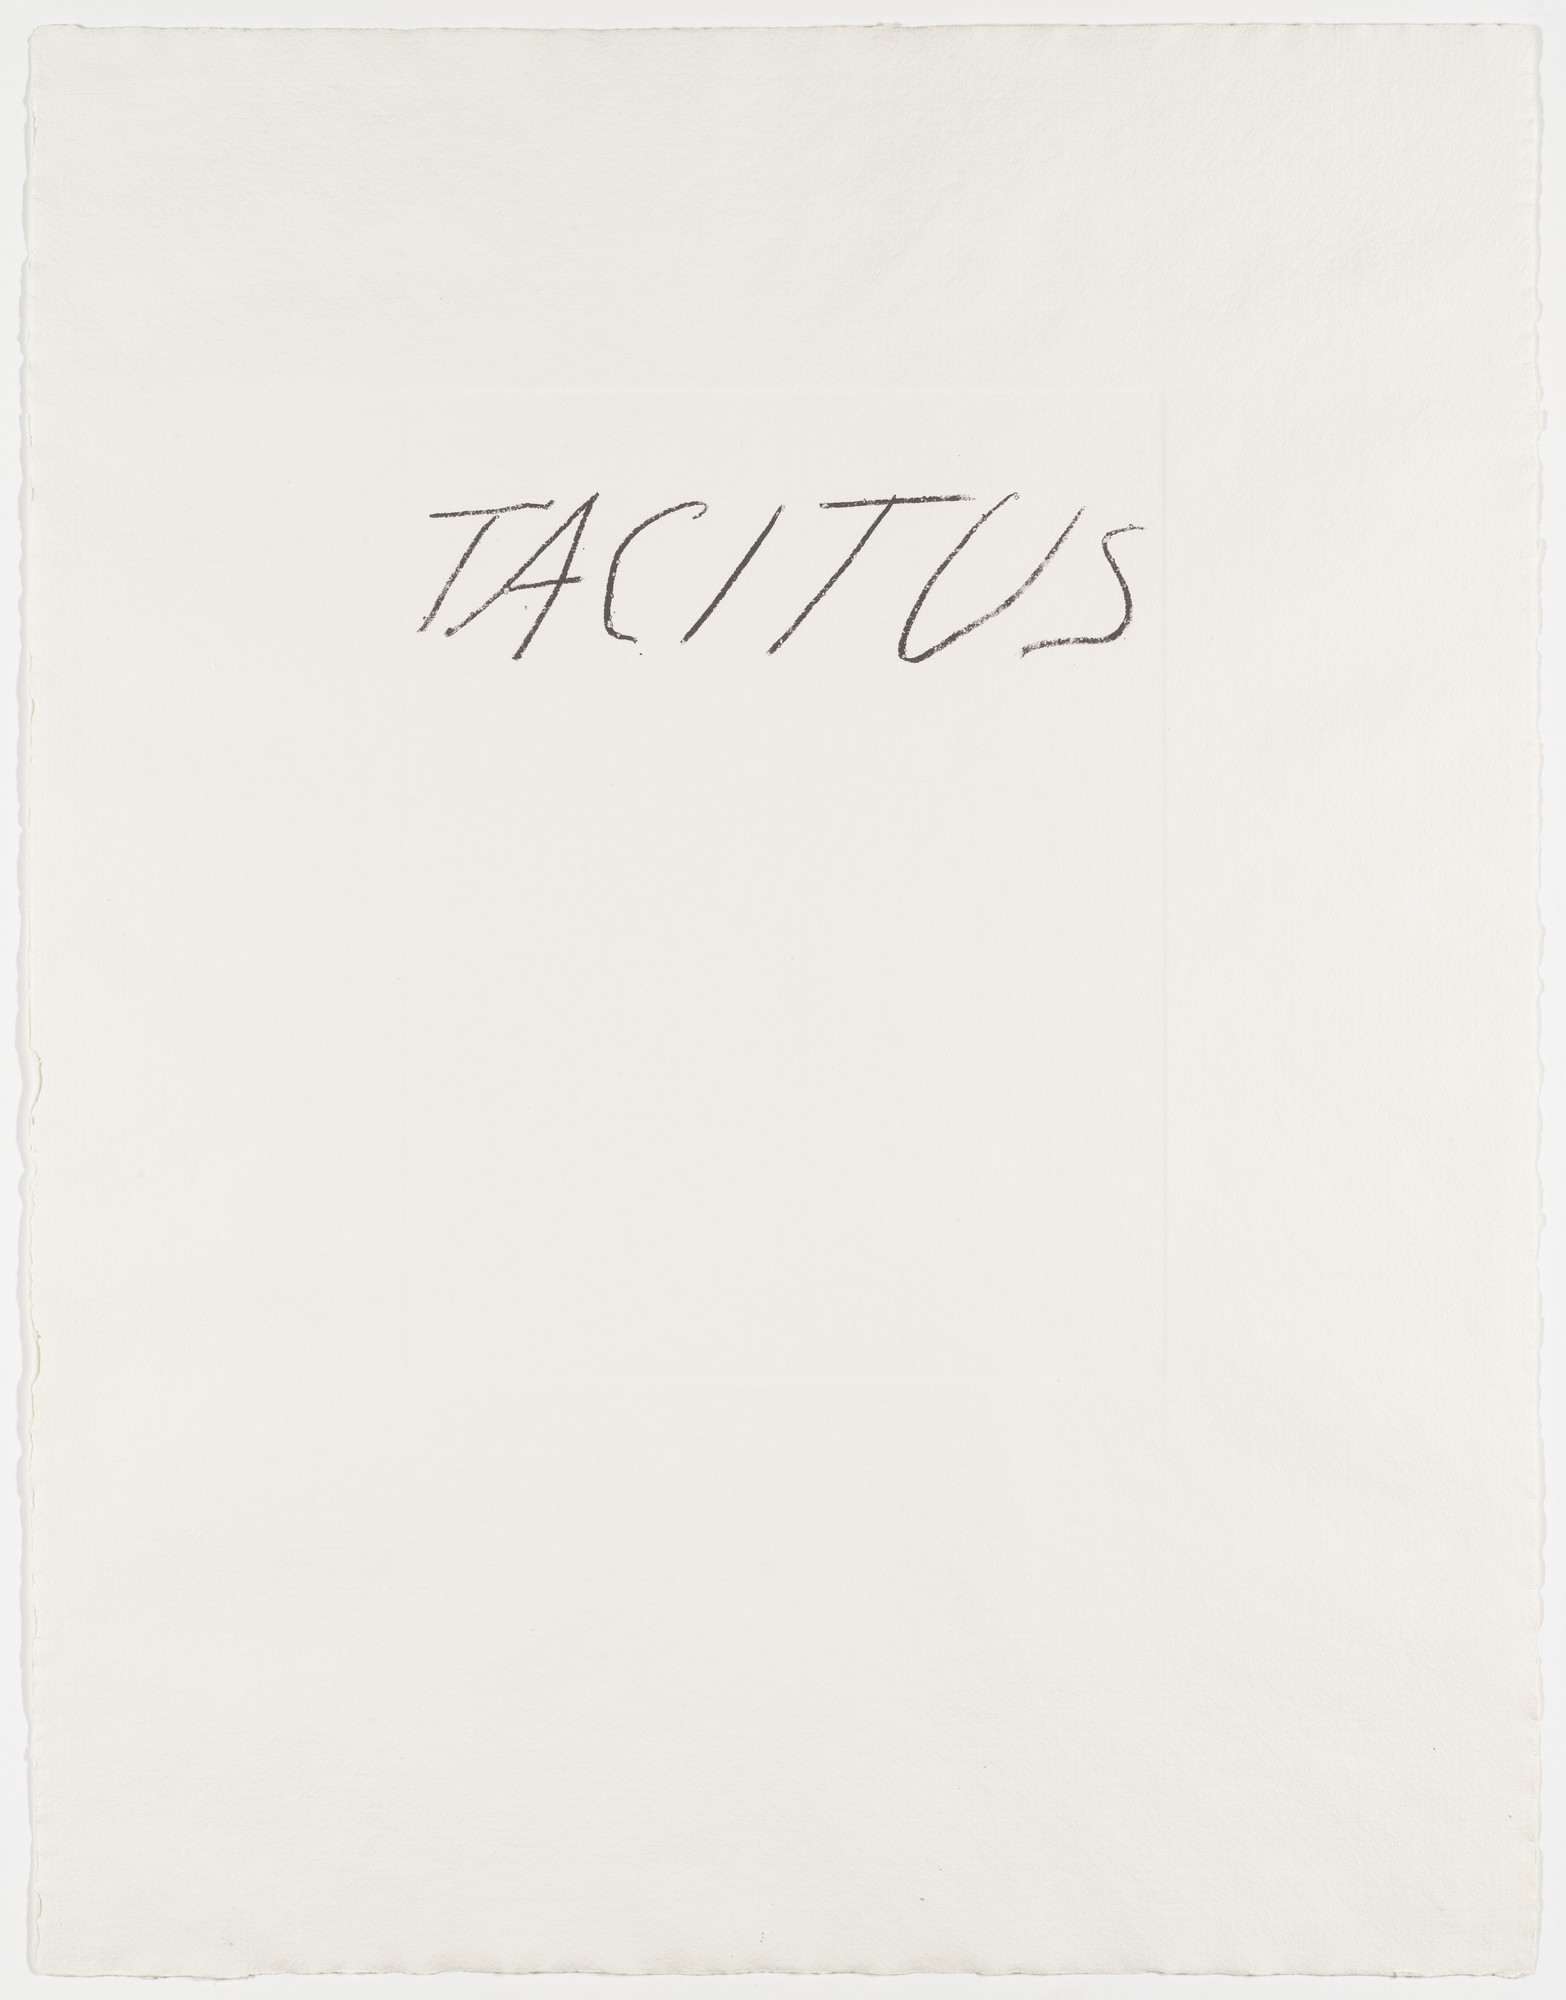 Cy Twombly. Tacitus from the portfolio Six Latin Writers and Poets. 1975-1976